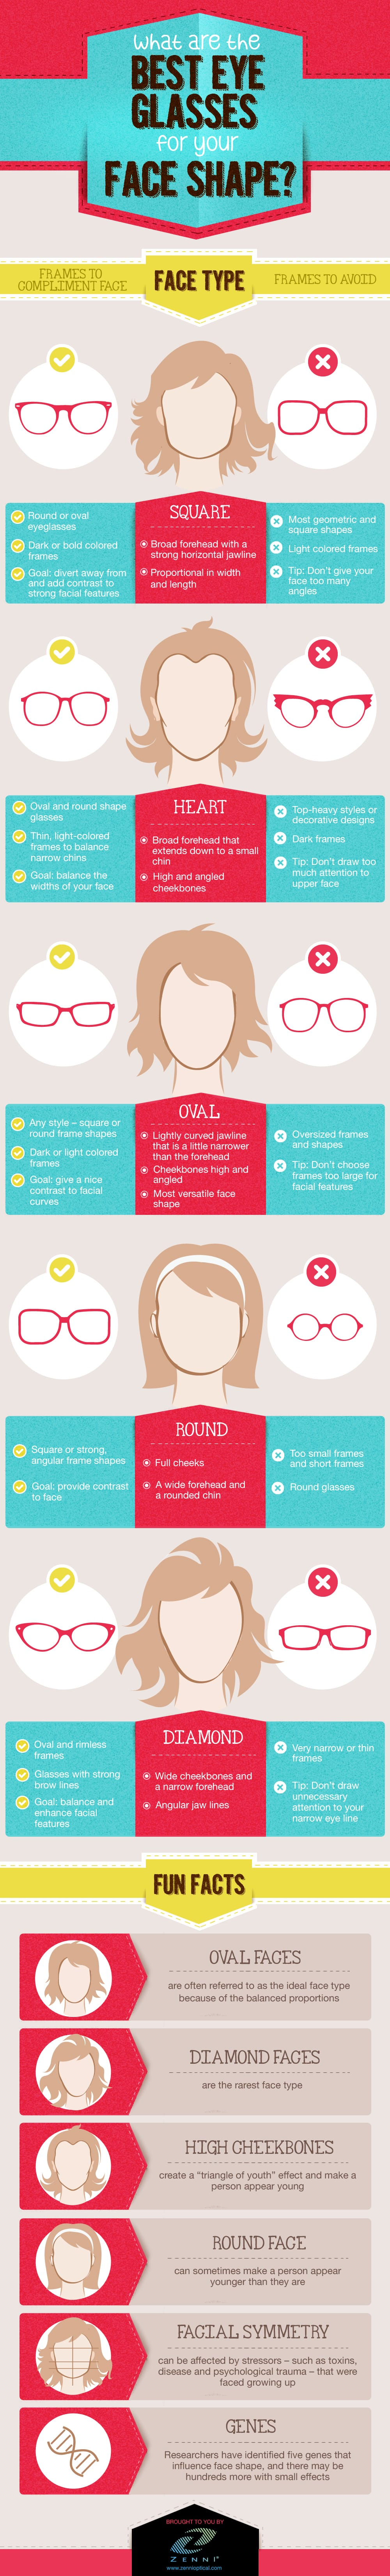 Eyeglass Frame By Face Shape : What are the Best Eyeglasses for Your Face Shape? - Blog ...